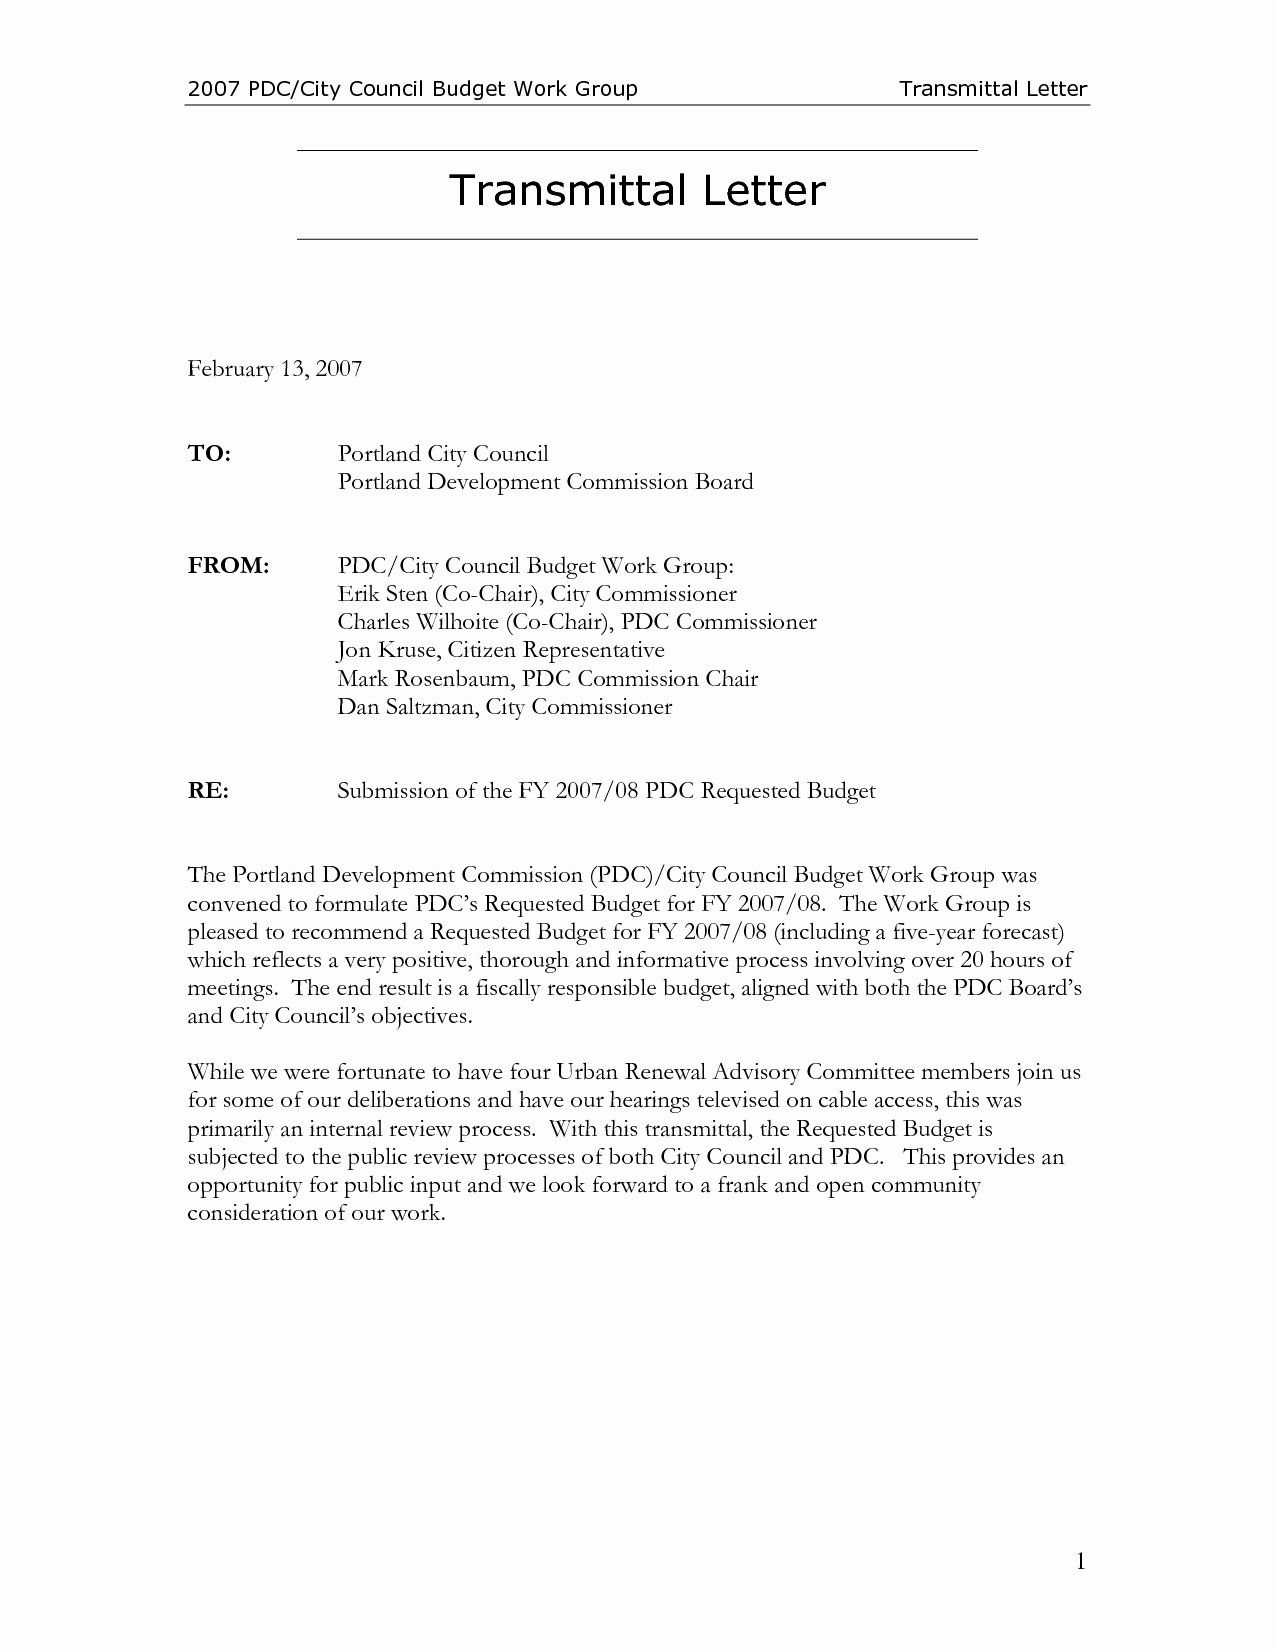 Letter Of Transmittal Template Construction Inspirational Letter Transmittal Template Construction Collec Lettering Printable Letter Templates Letter Templates Letter to city council template